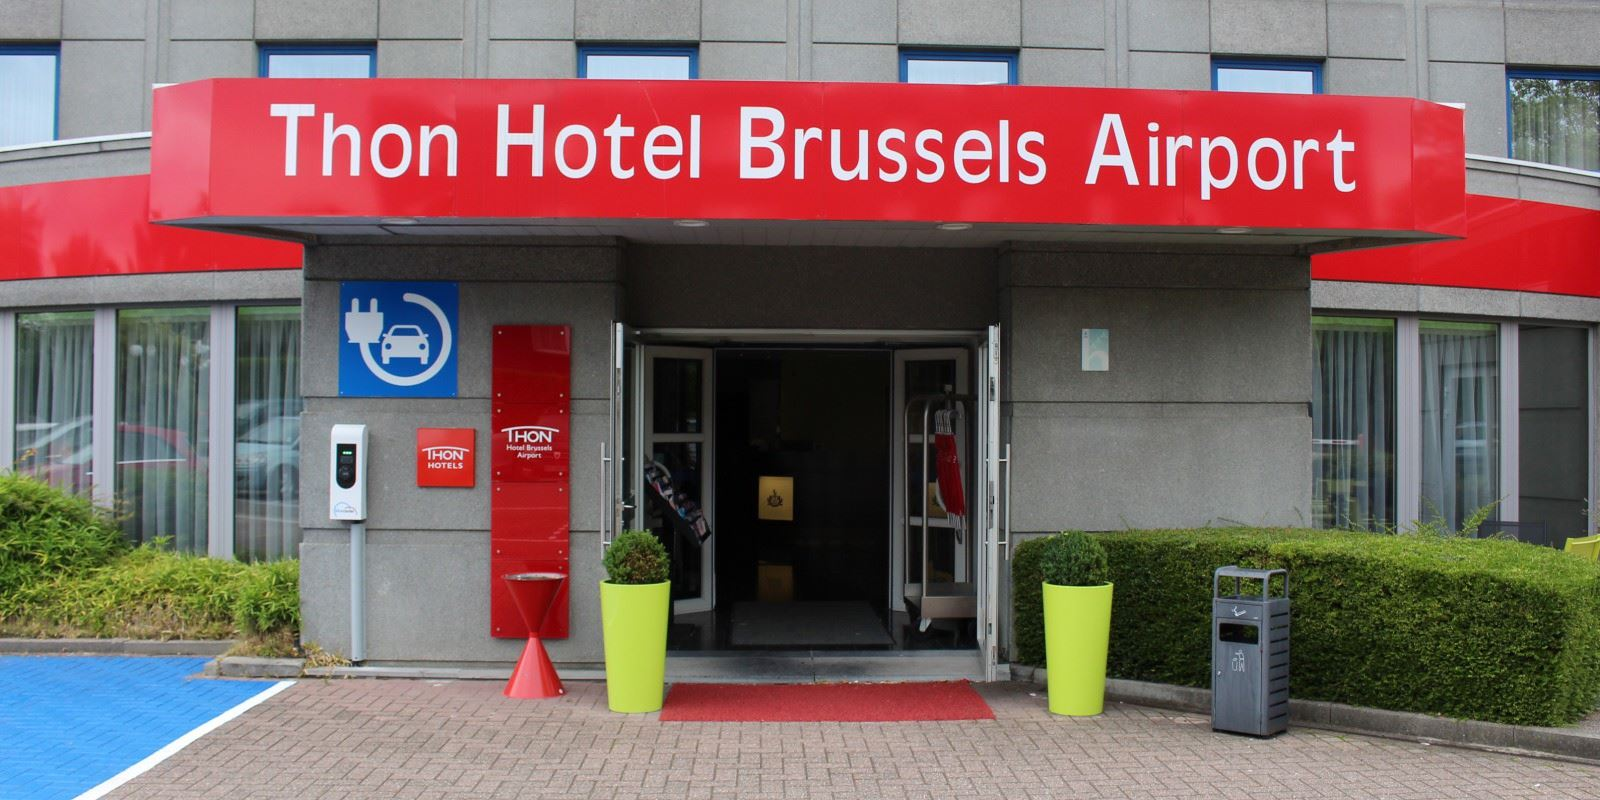 Thon Hotel Brussels Airport fasade